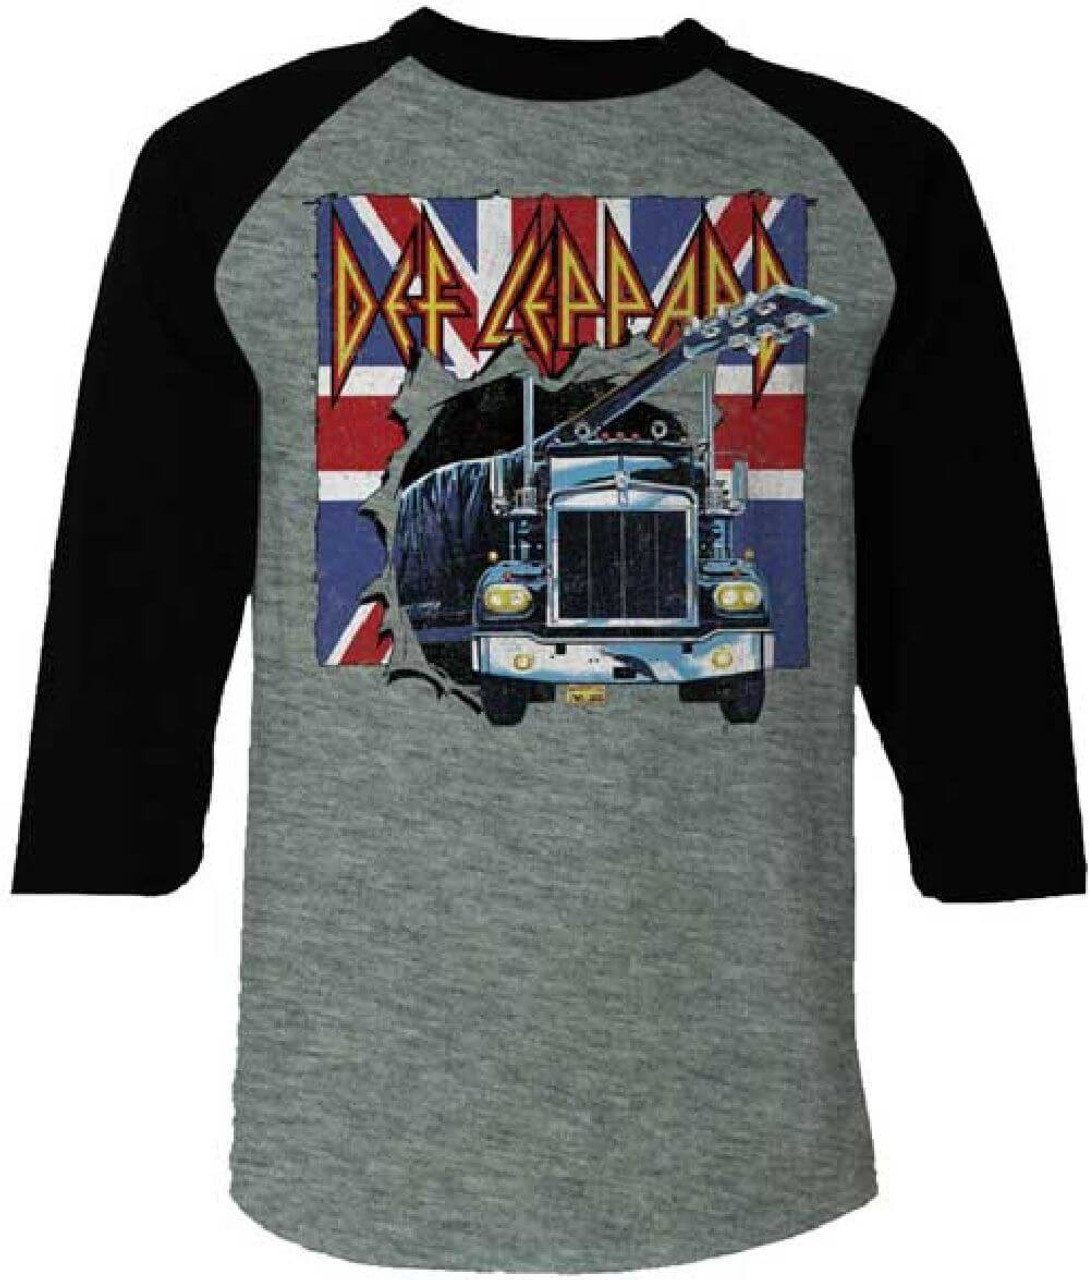 3bad5538595 Def Leppard Logo with the On Through the Night Album Cover Semi Truck  Artwork and Union